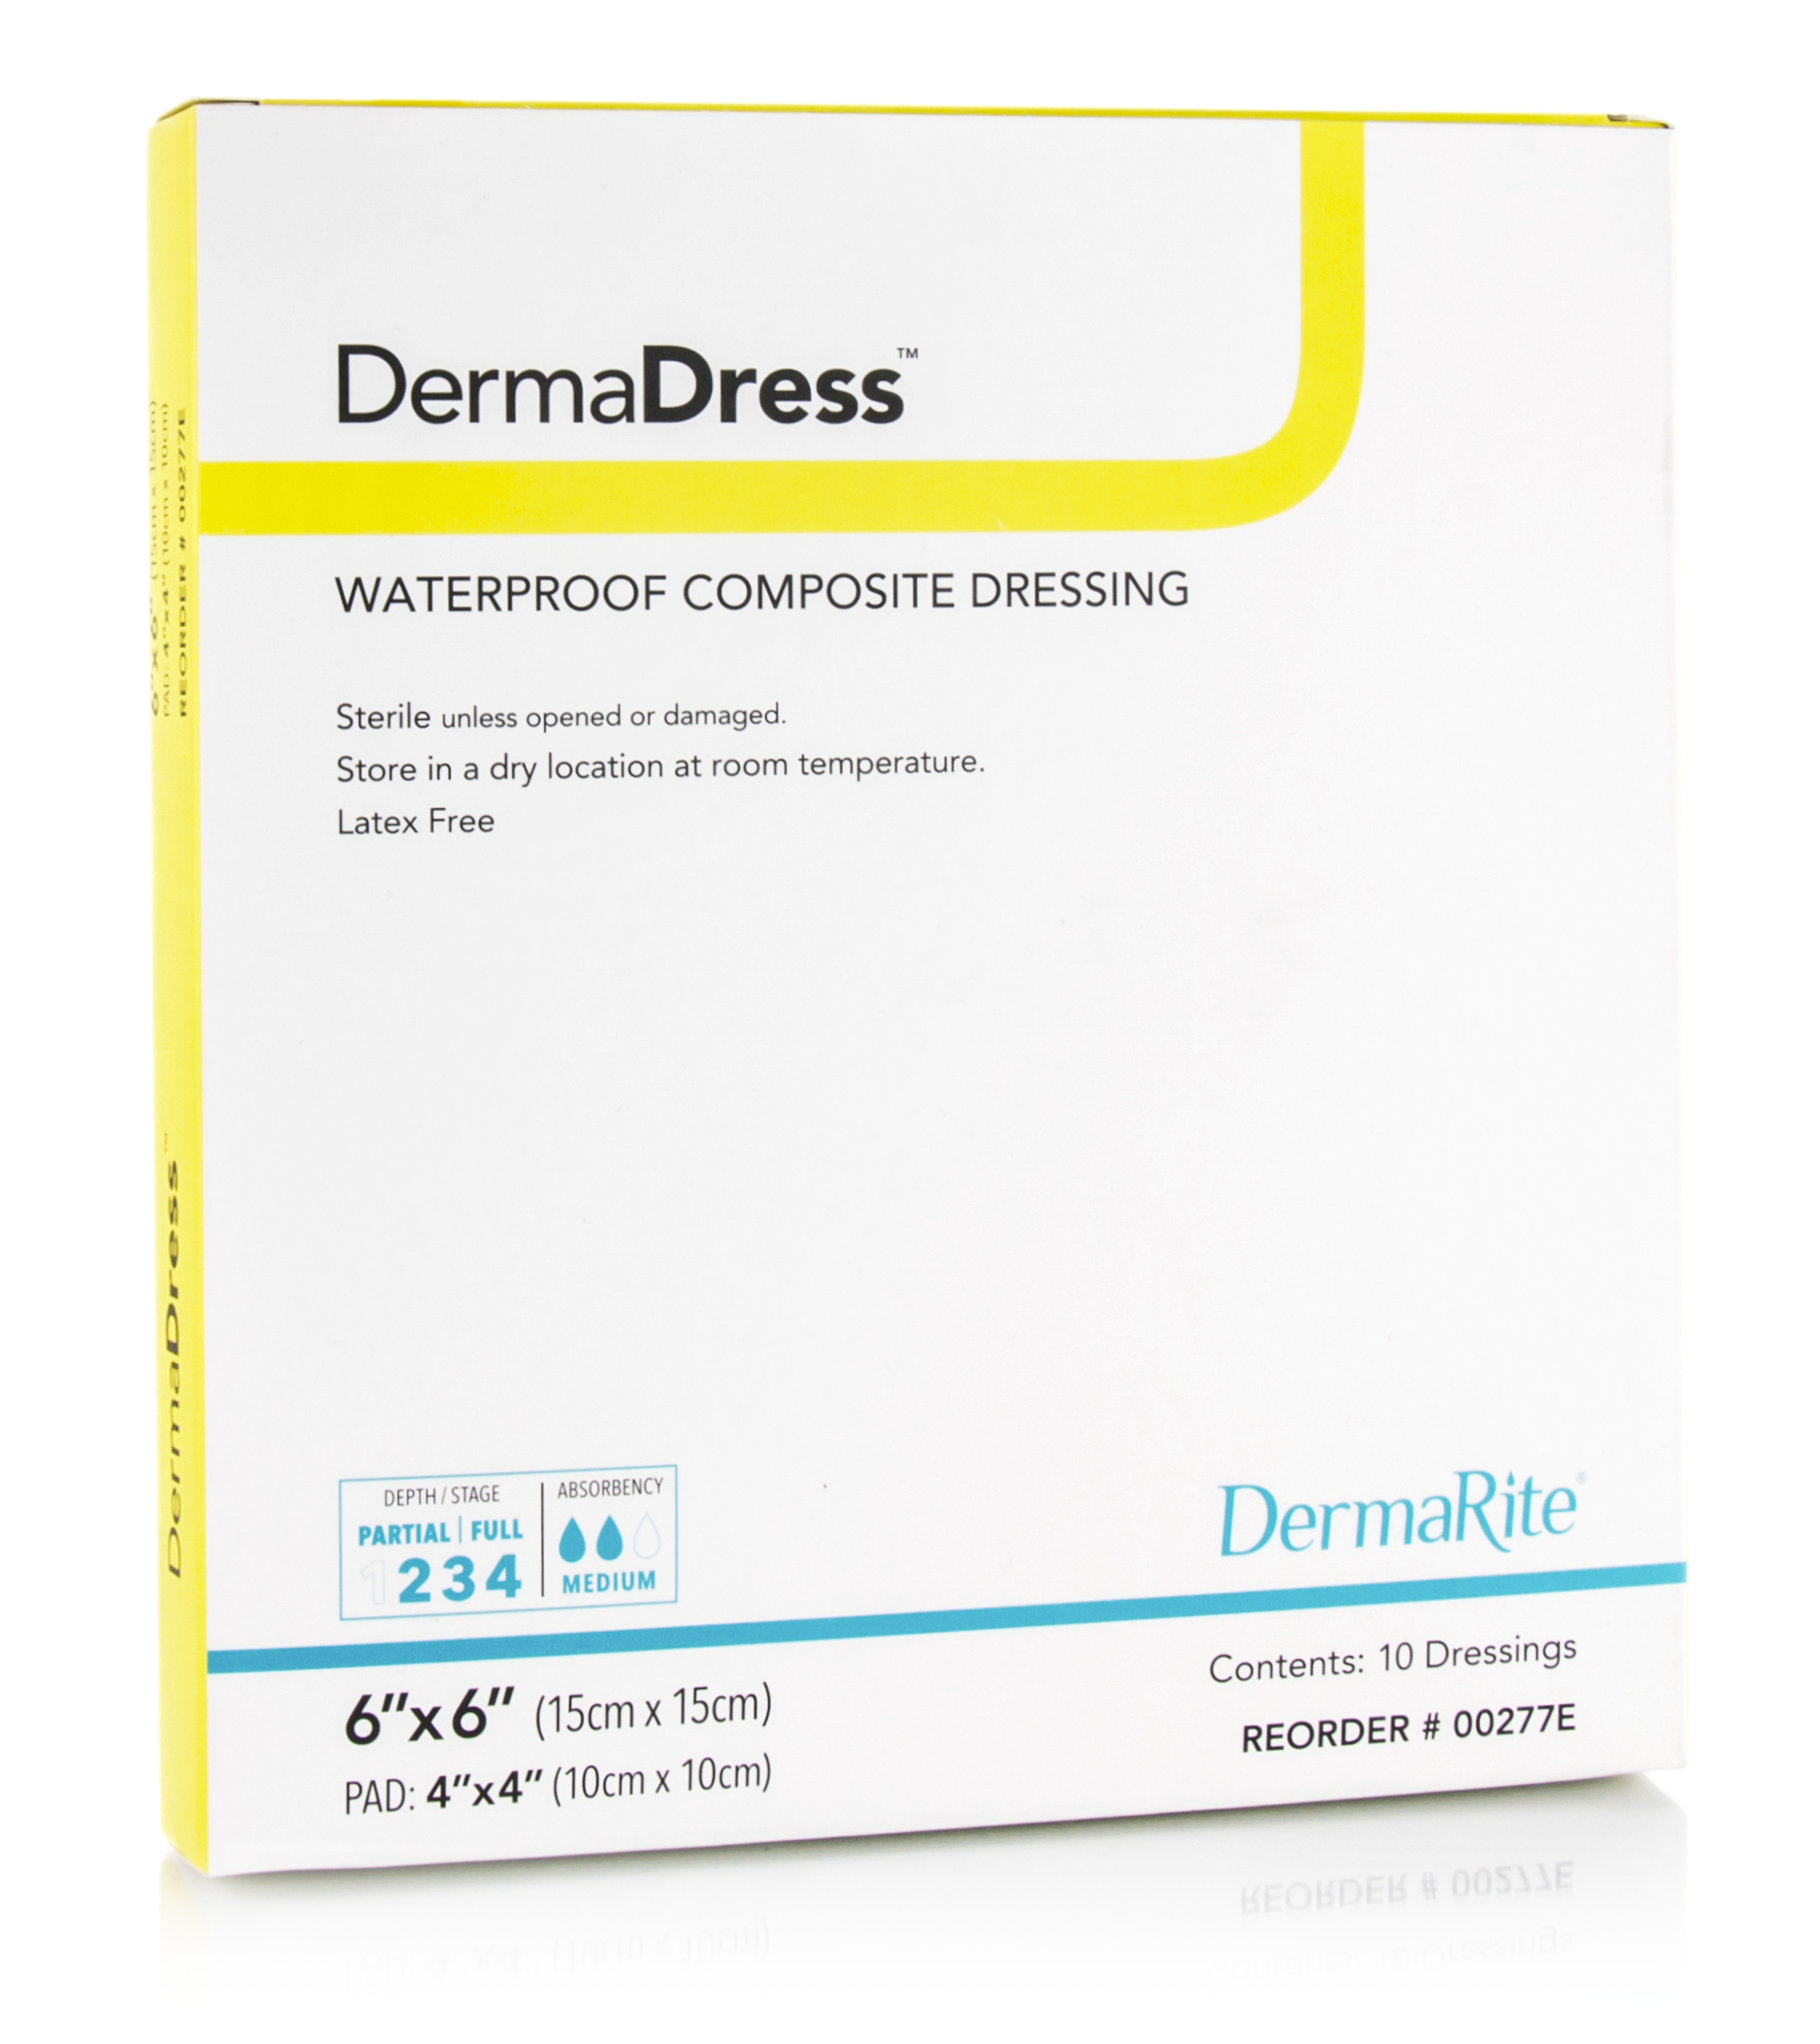 DermaDress Waterproof 6x6 Inch Composite Dressing, Sterile, Box of 10